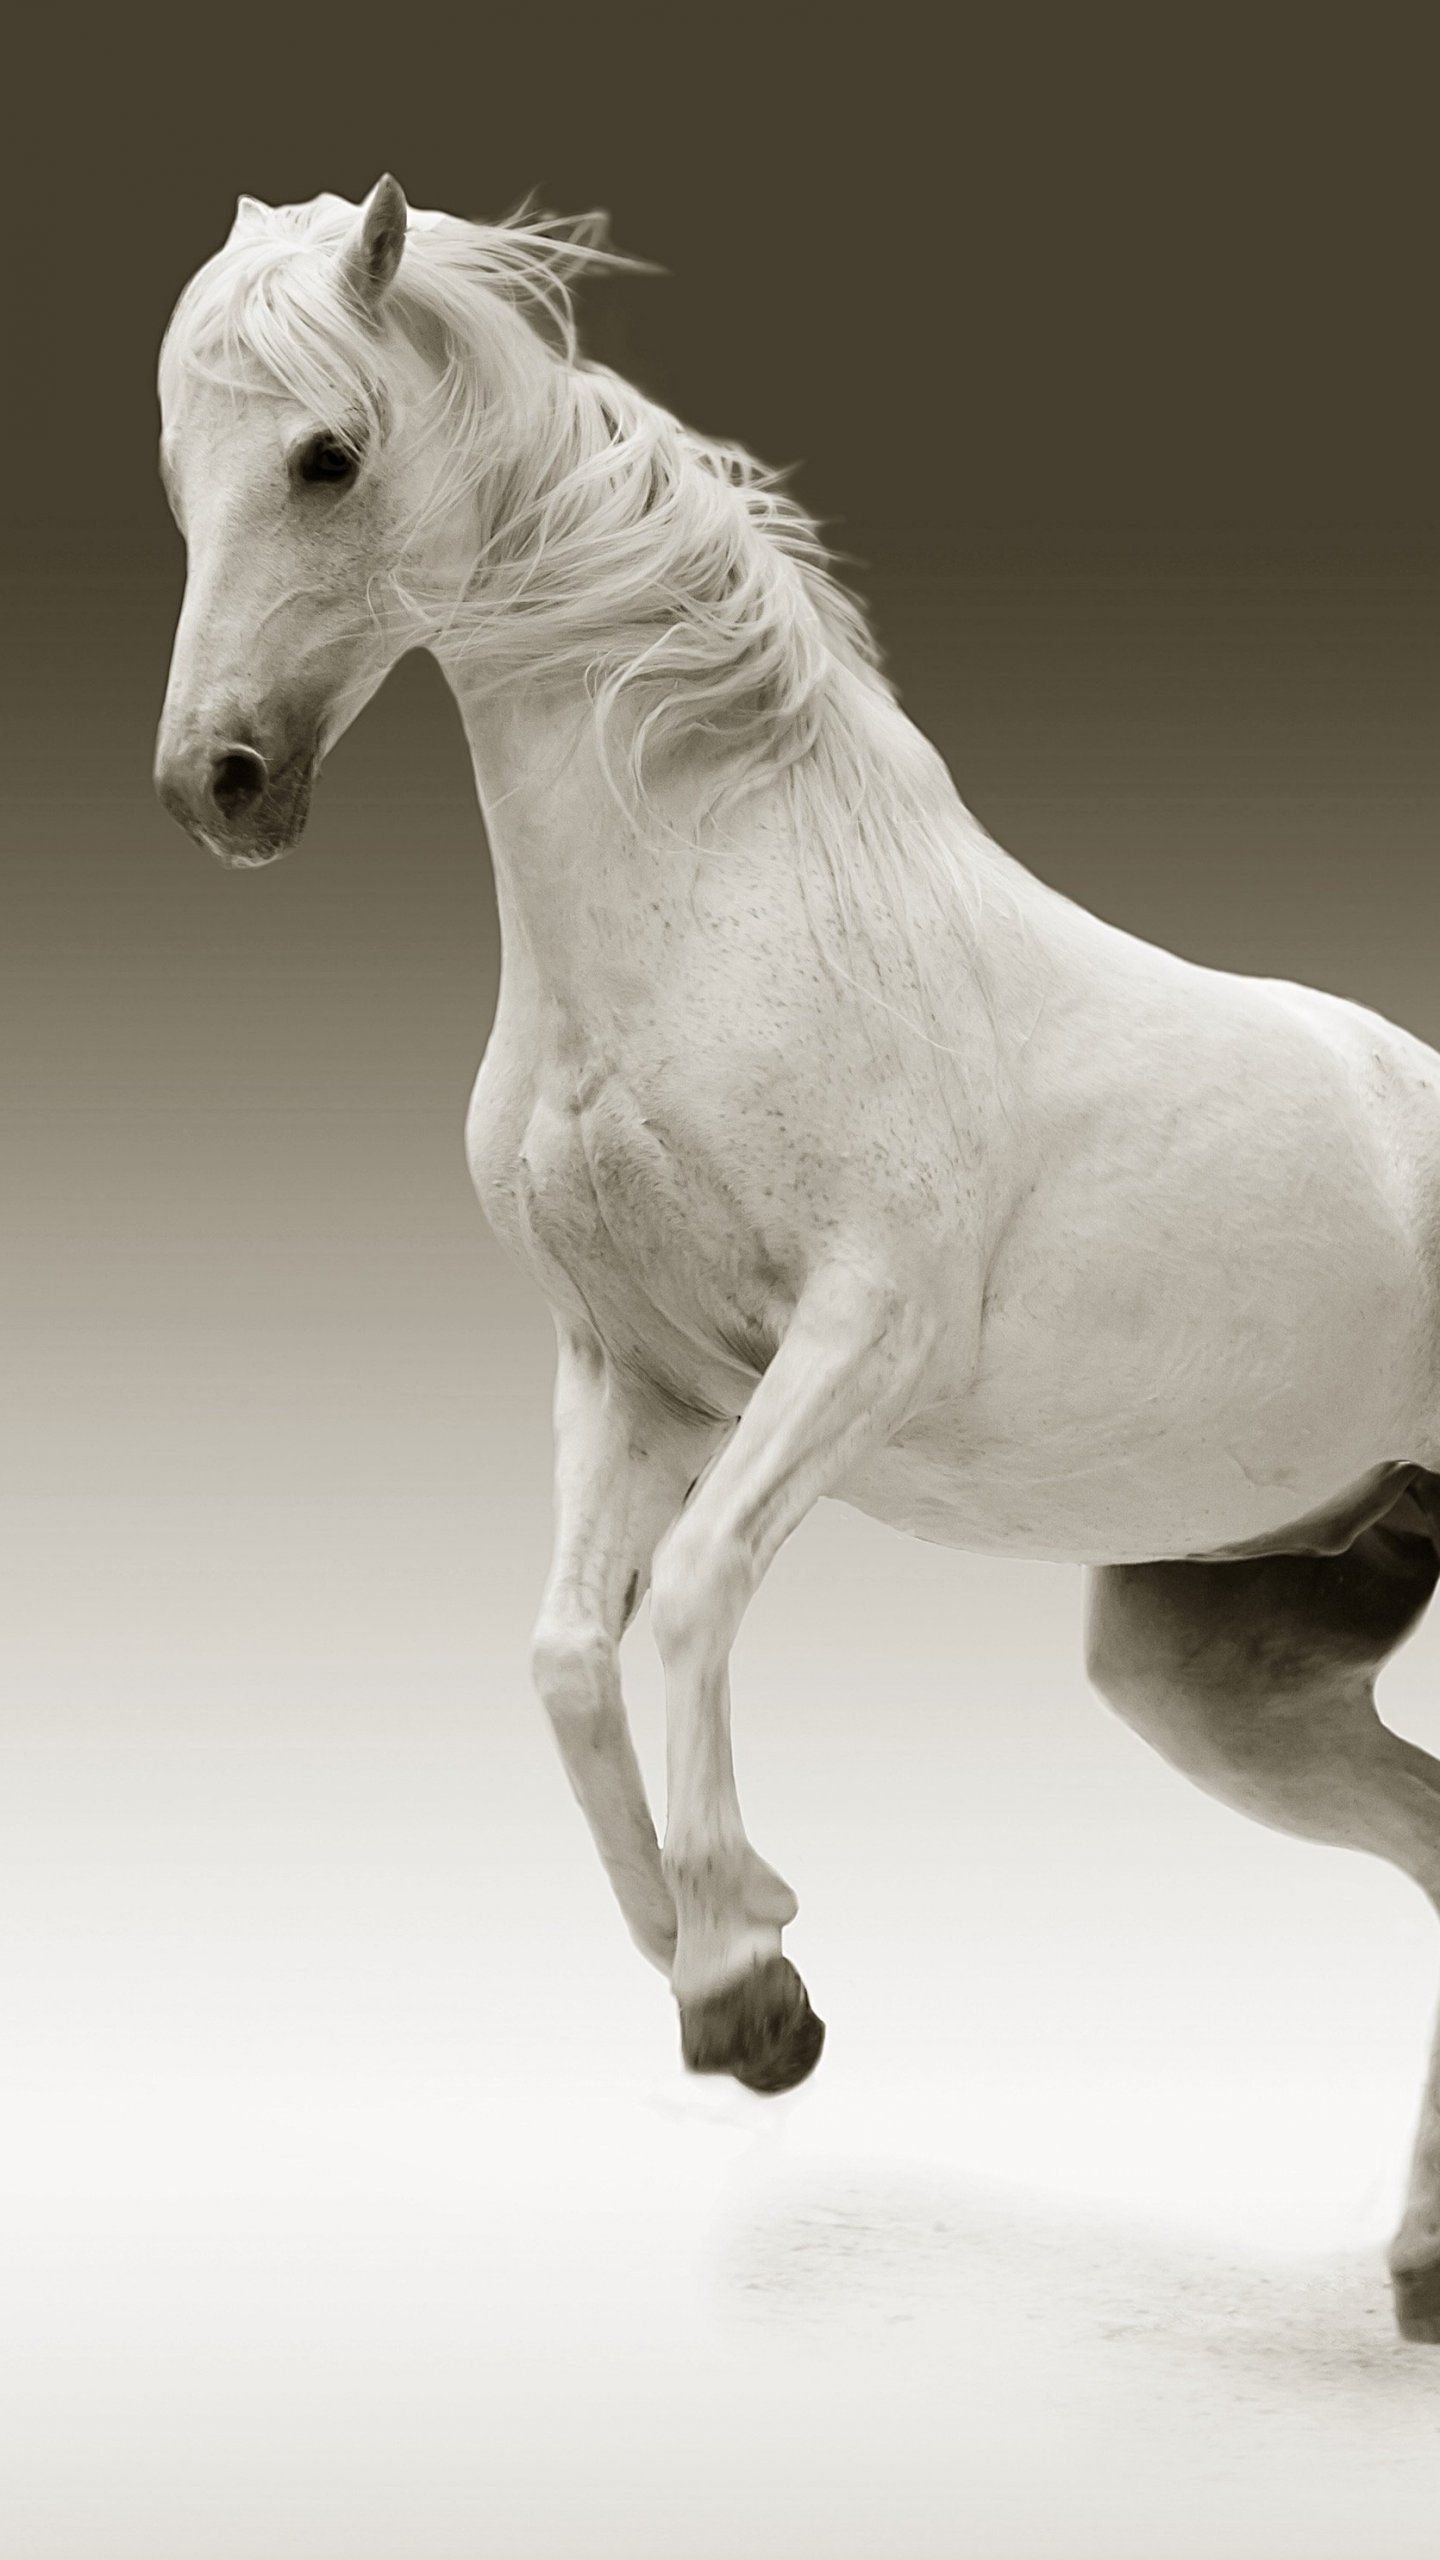 1440x2560 White Horse Wallpaper - iPhone, Android & Desktop Backgrounds